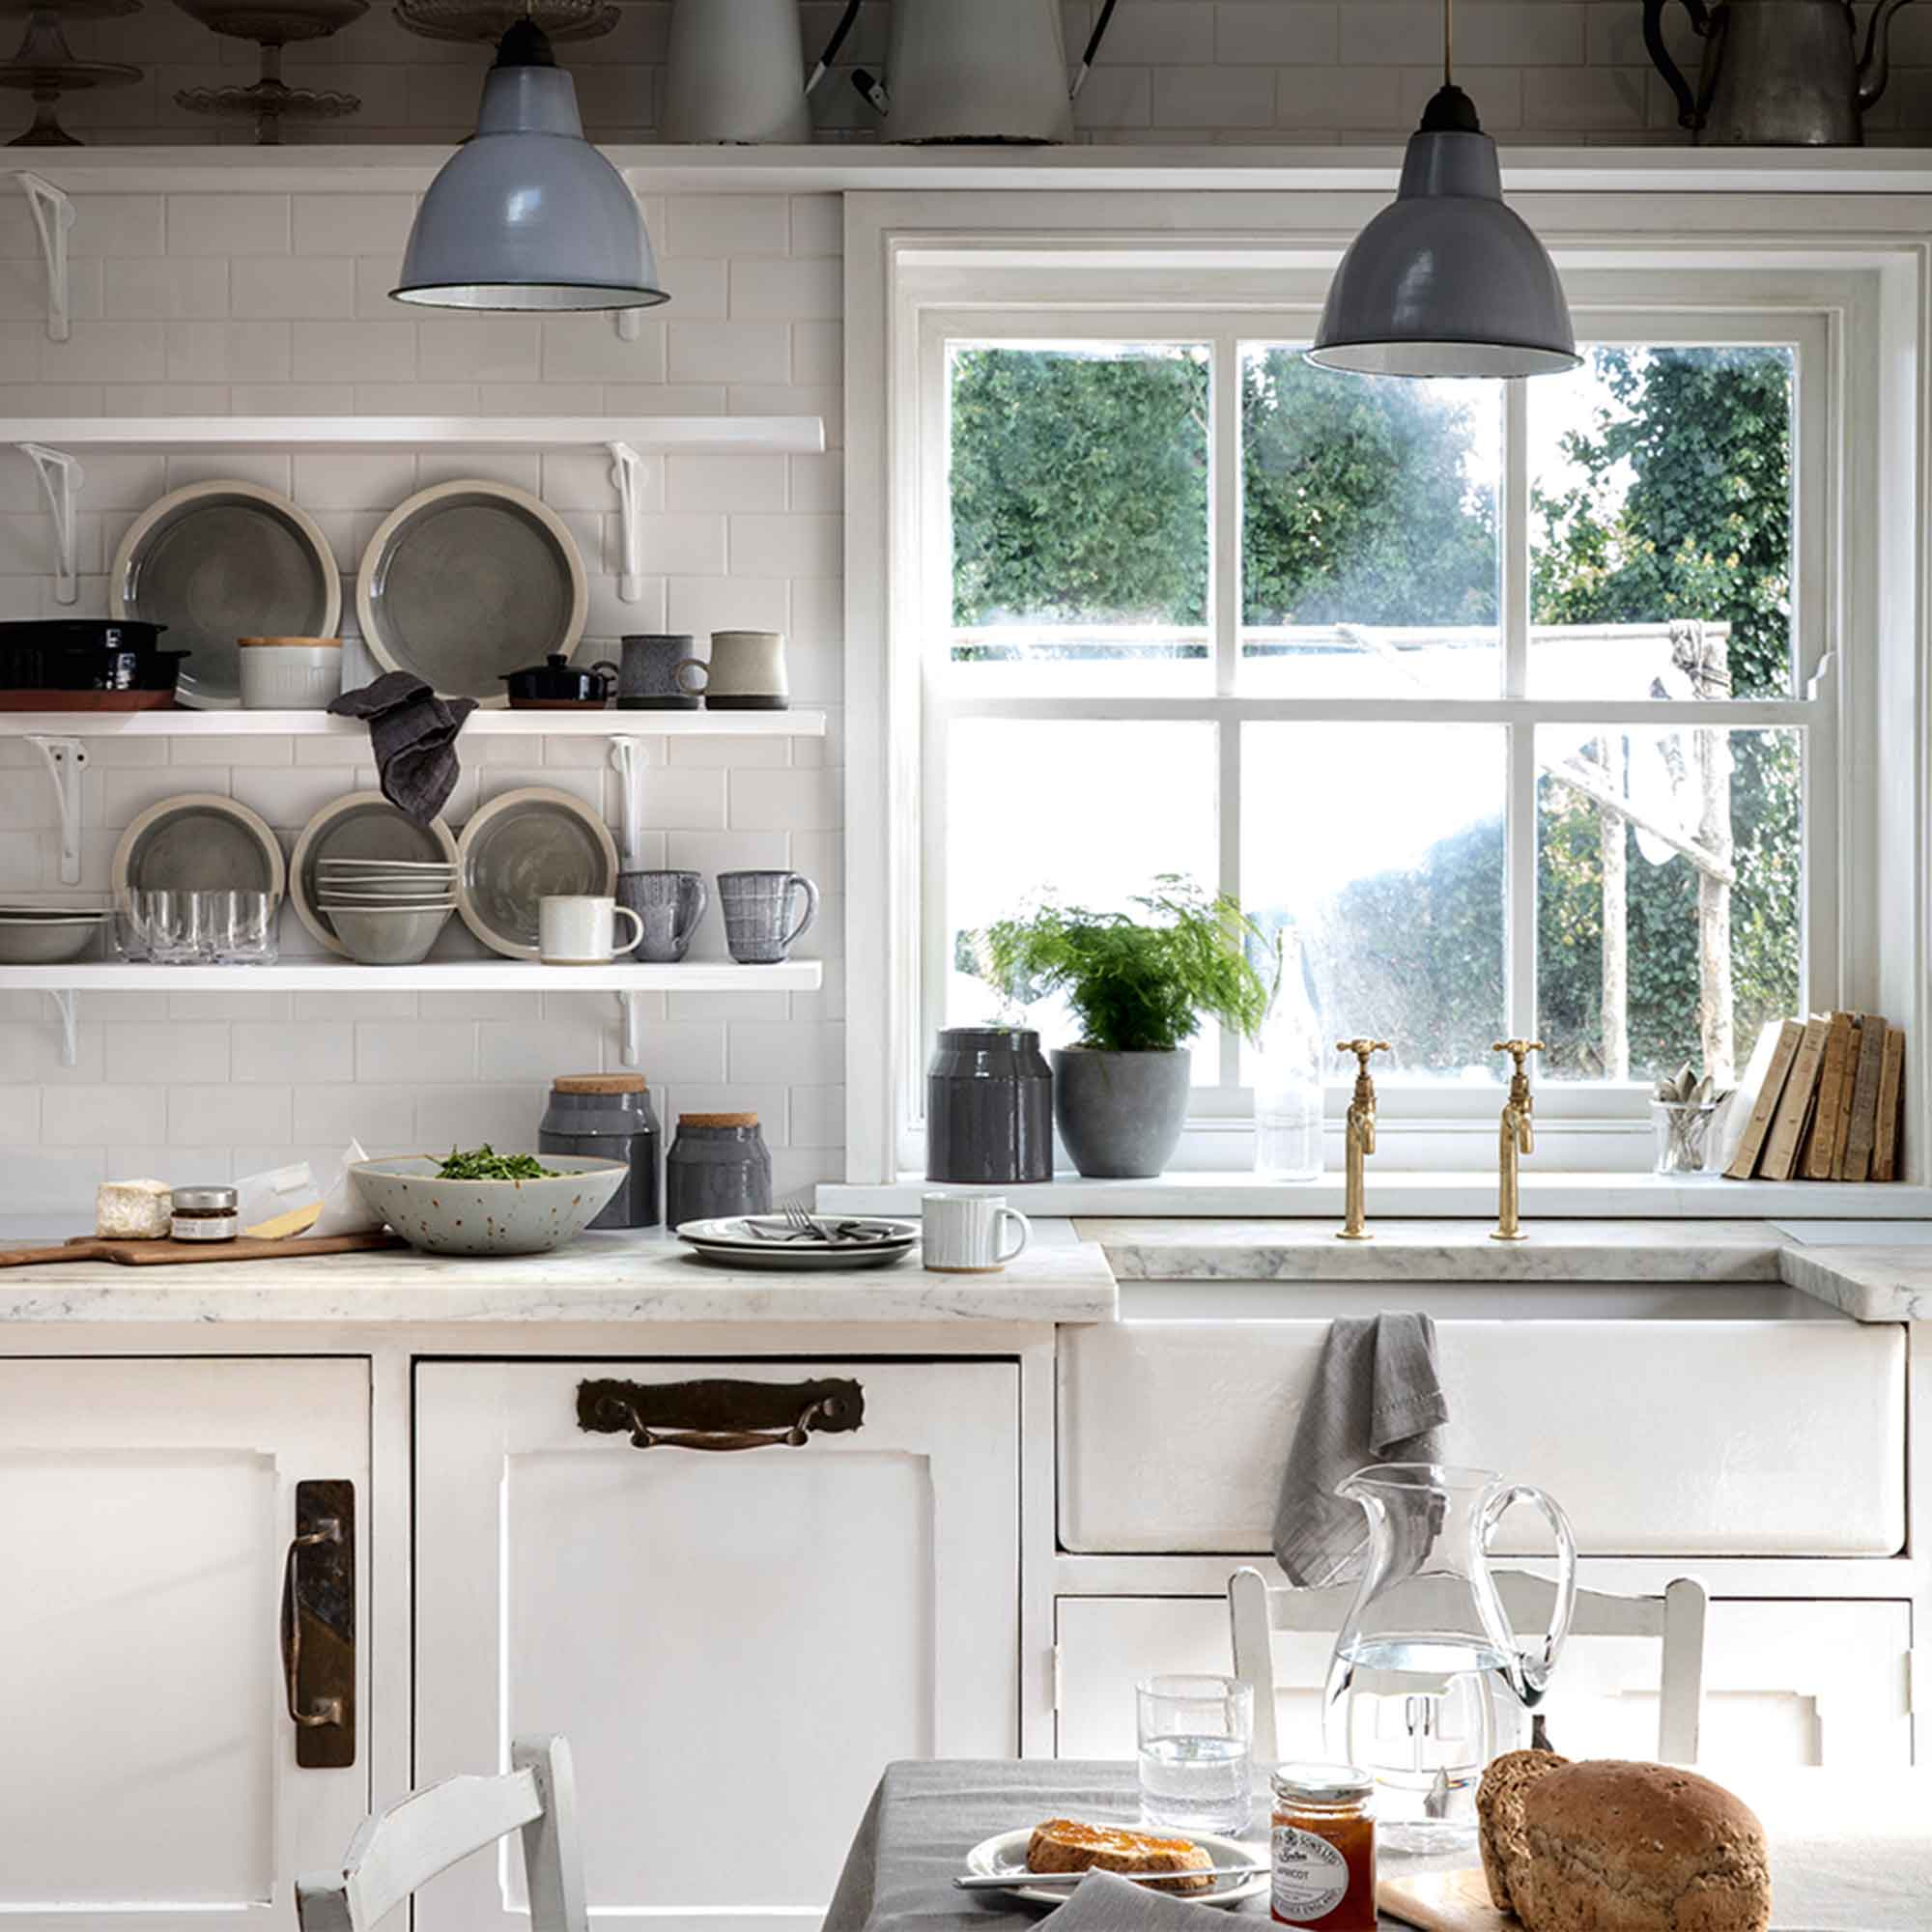 How to create a Scandi kitchen